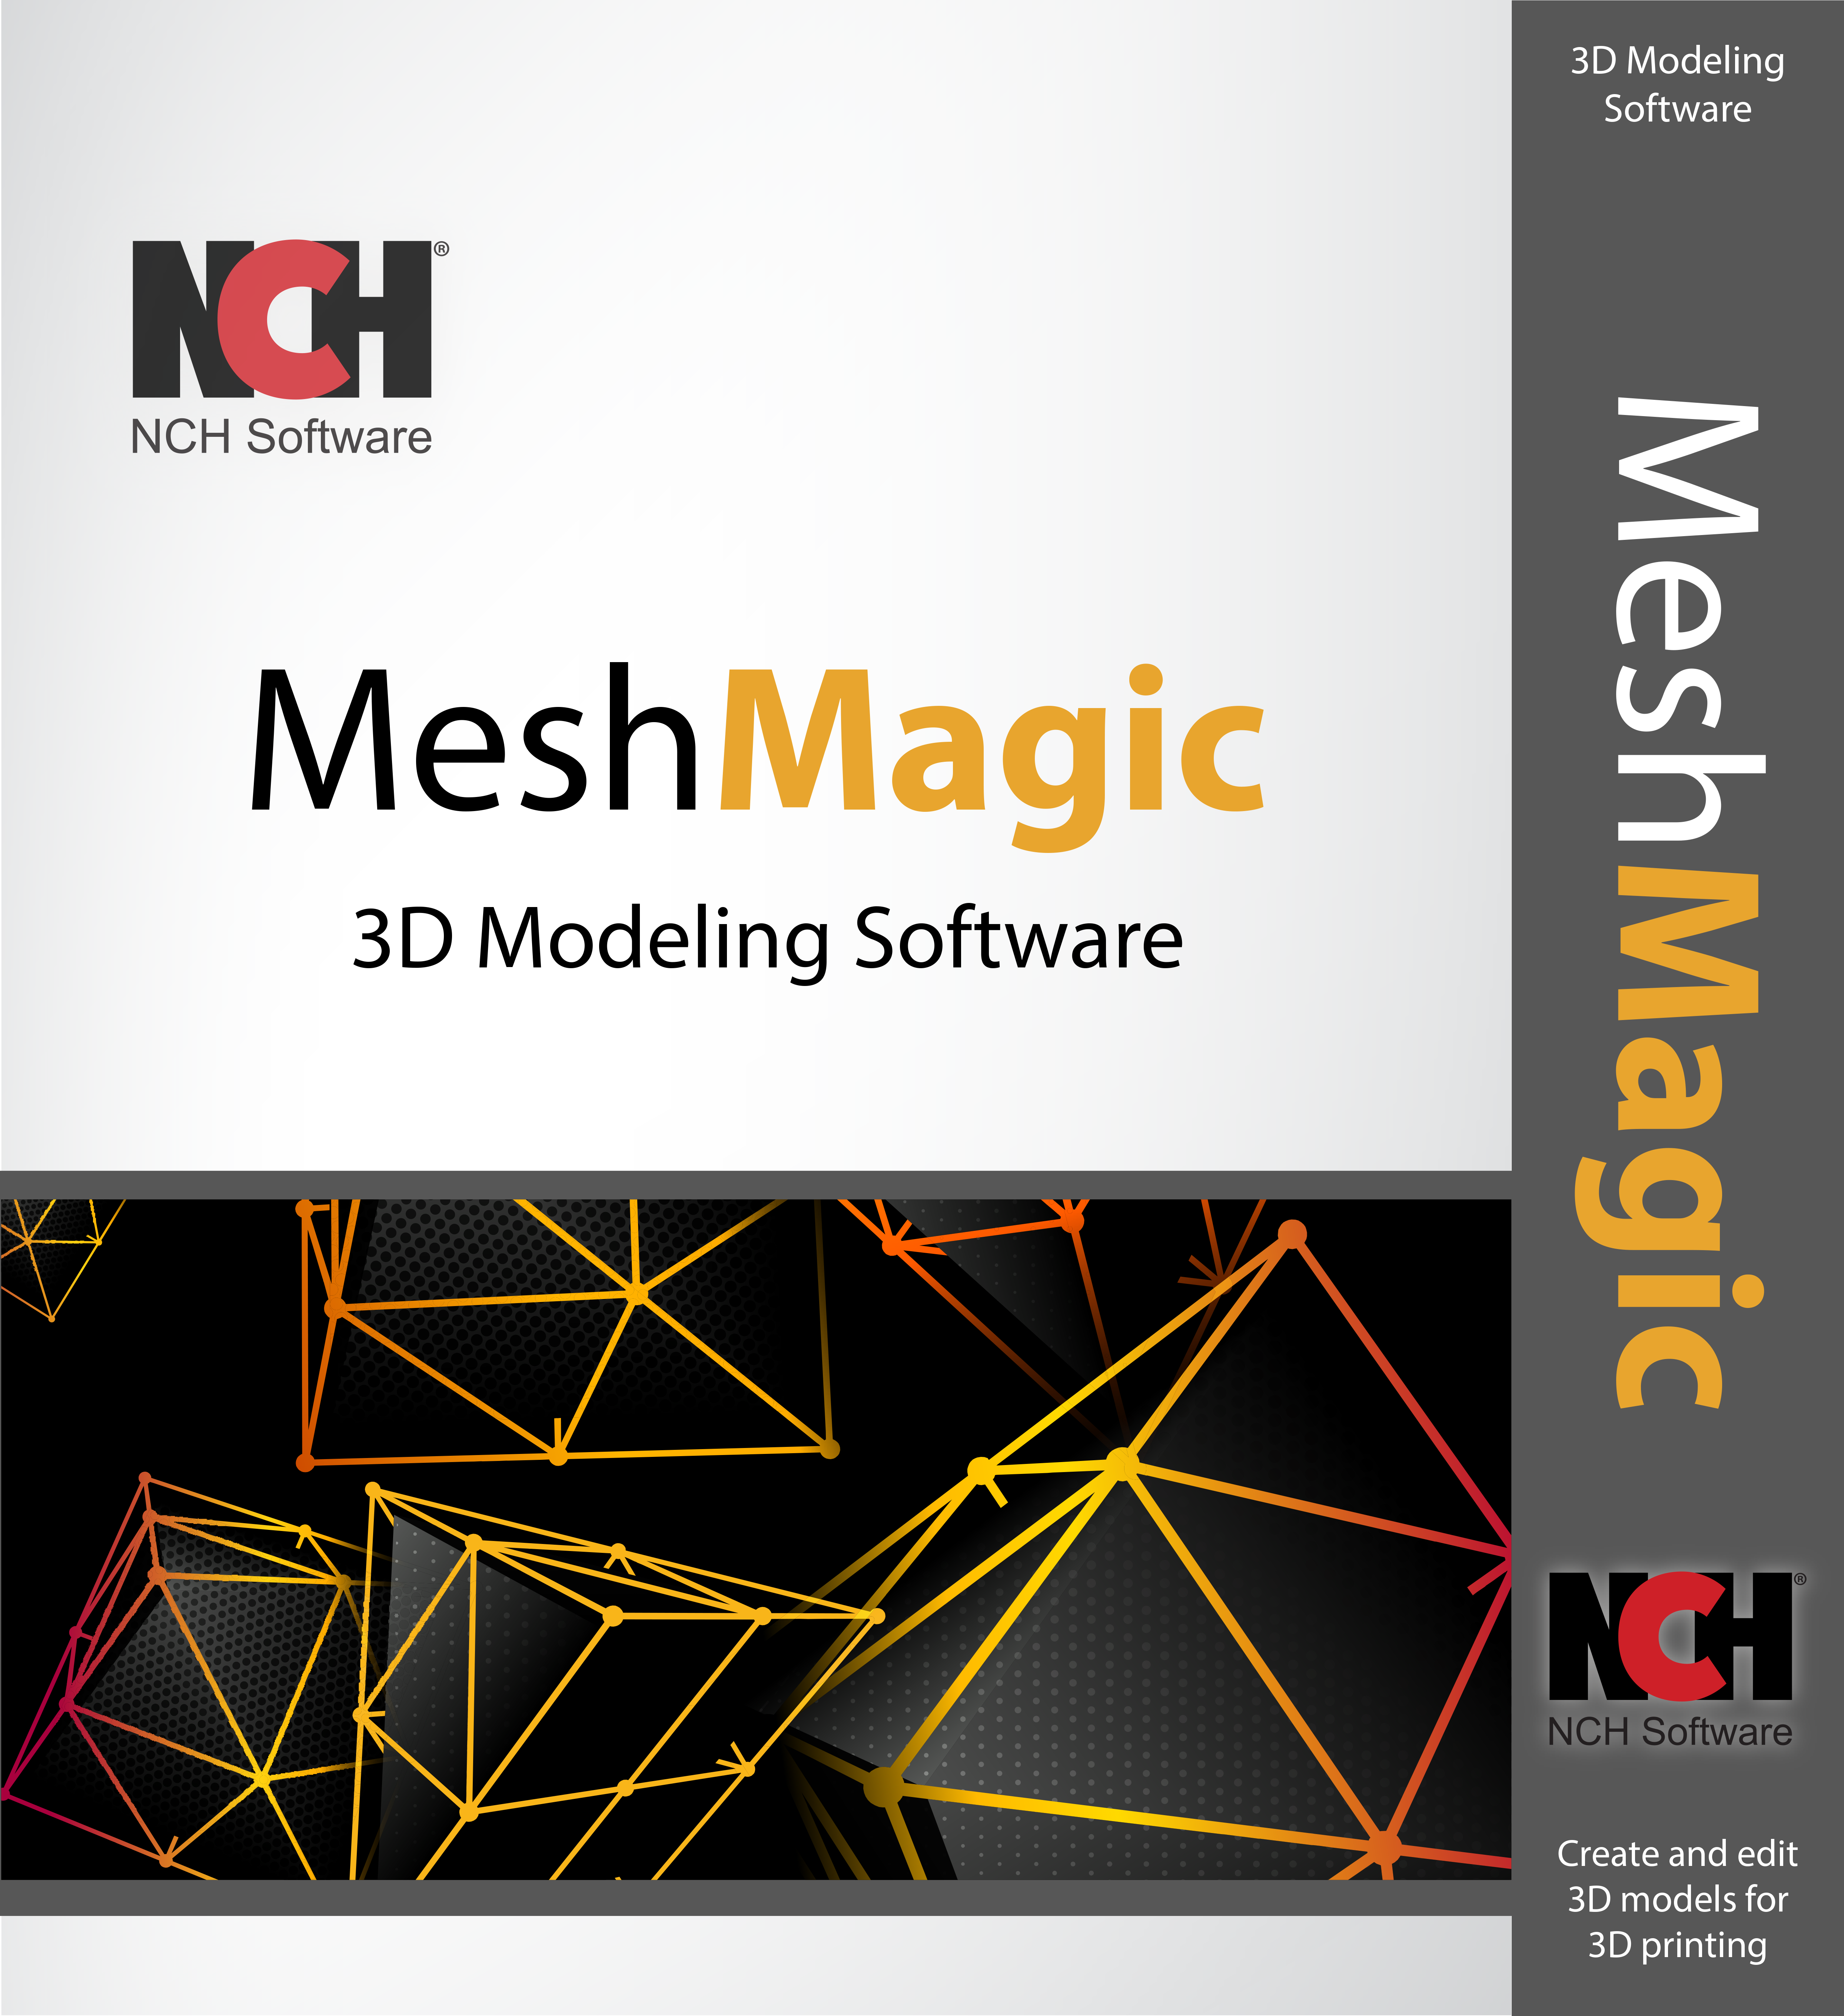 MeshMagic 3D Free 3D Modeling Software [Download]